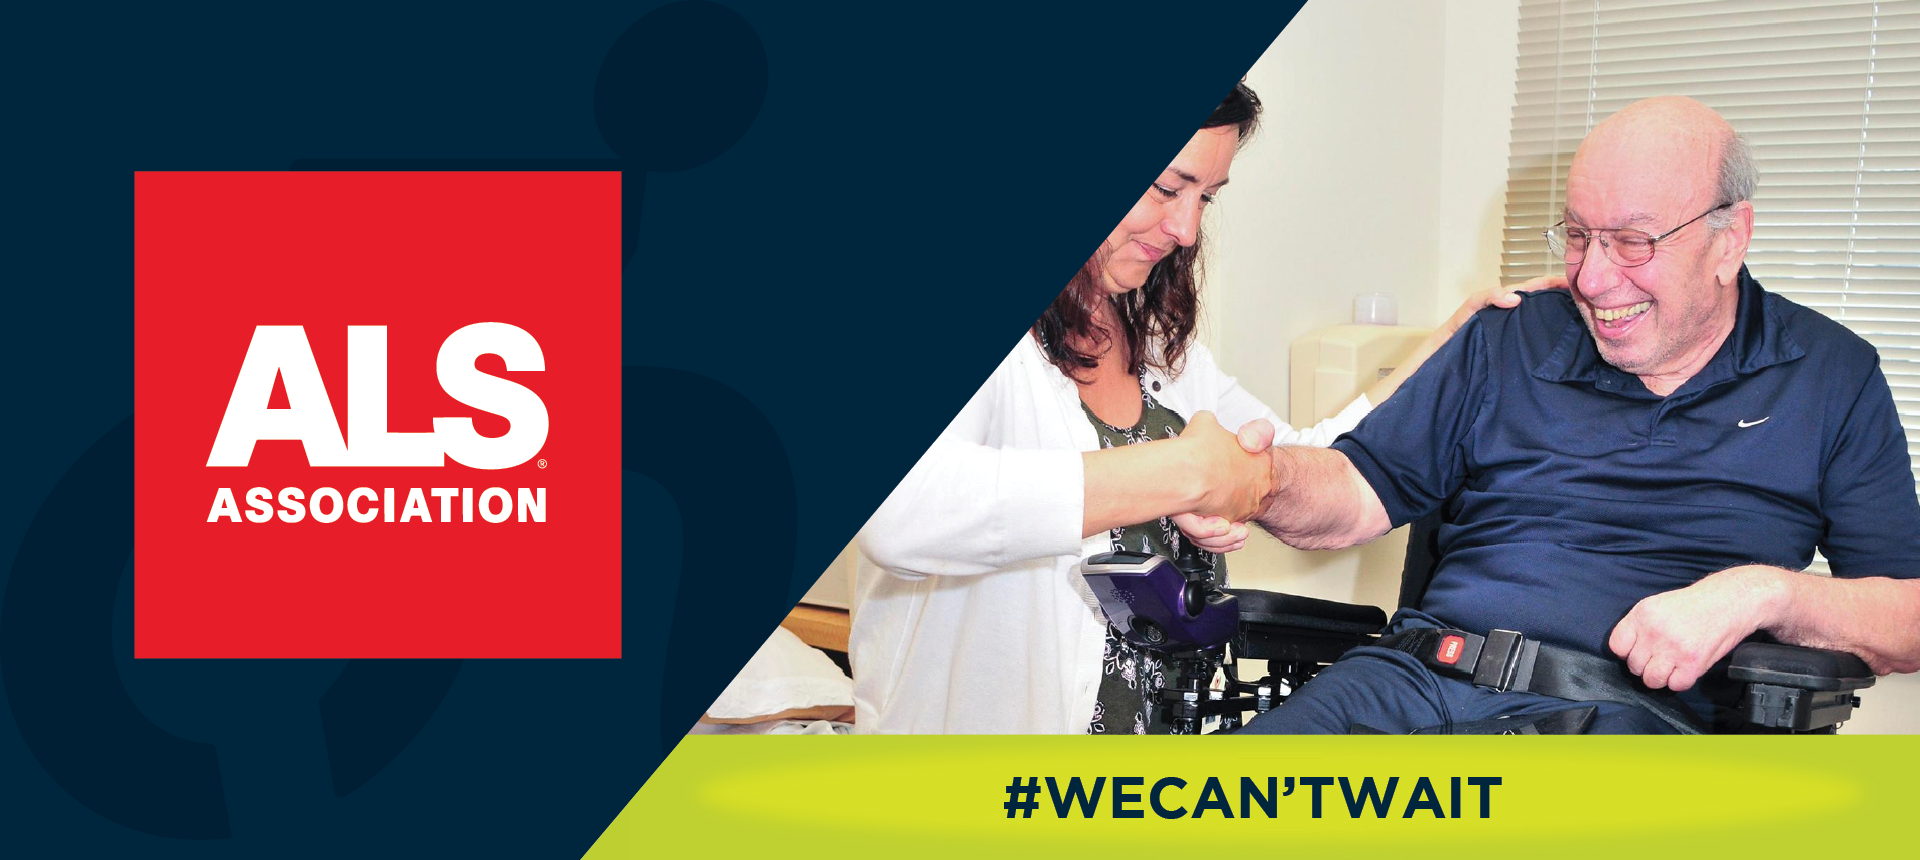 On left side of image, the ALS Association logo. On right side of the image, a senior caucasian male on power wheelchair shaking hands with caucasian woman. Underneath, the image reads: #WeCan'tWait